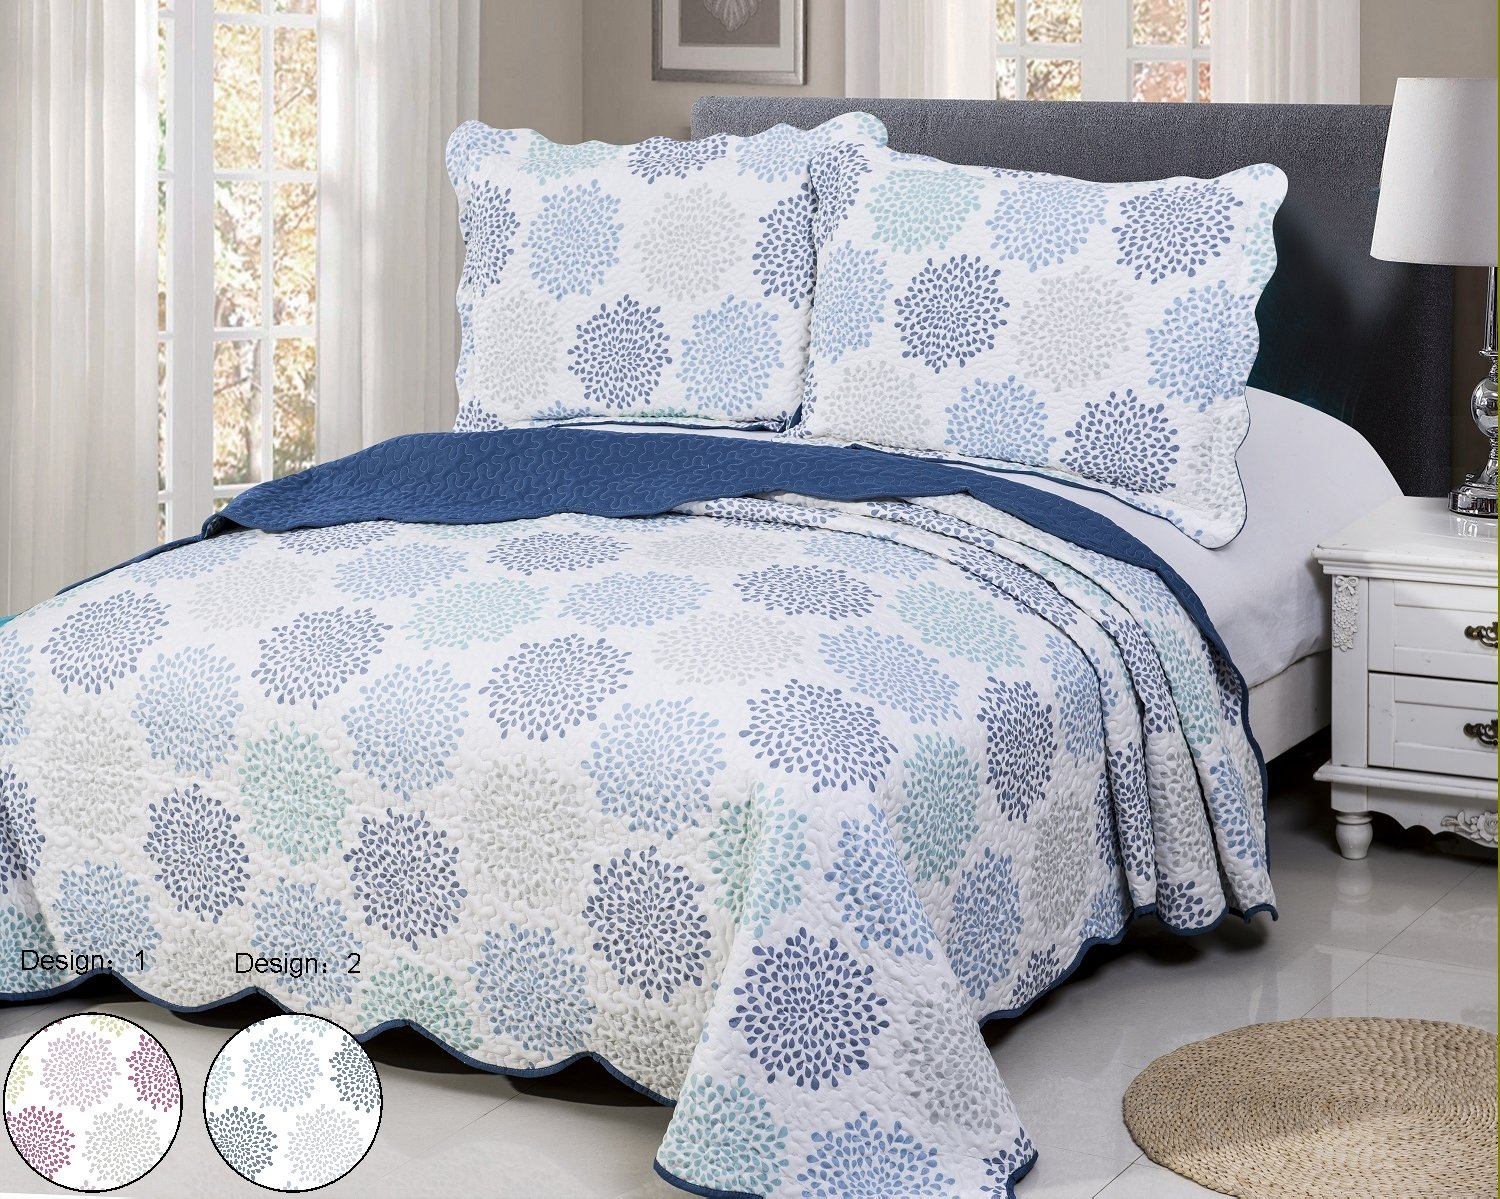 vivinna home textile Disperse Printing Quilt Set Queen/Full Size(90''x90'' BLUE FLORENCIA) 3-Piece Bedspread Soft All-Season Luxury Microfiber Reversible Bedspread and Coverlet.